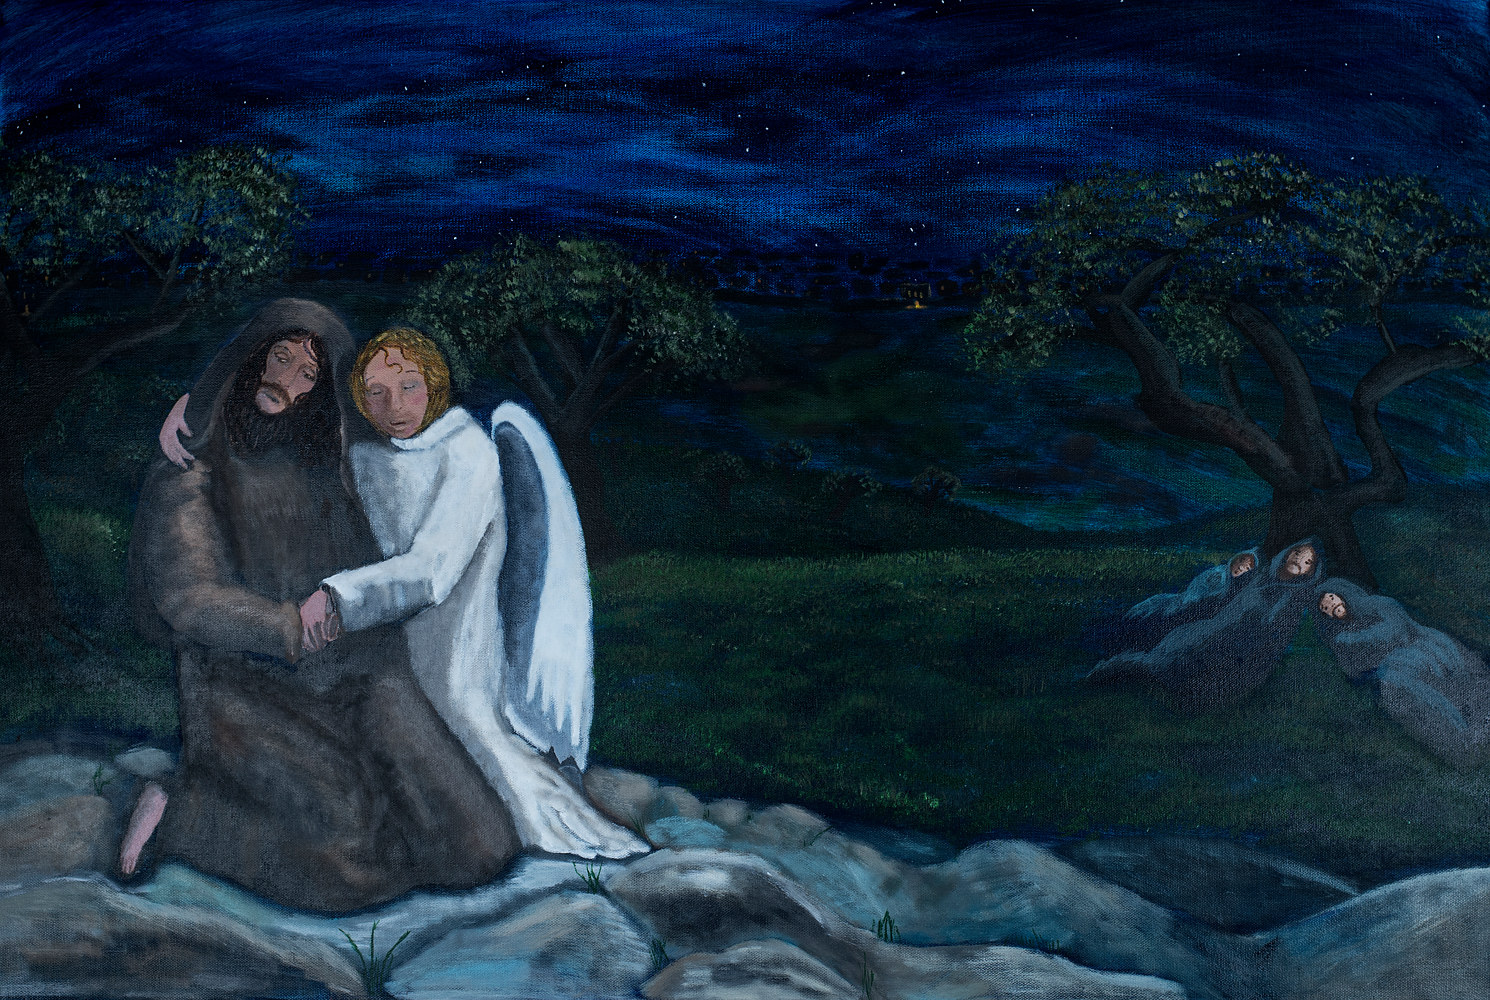 Acrylic painting The Night that Was Different From All Other Nights - Gethsemane by Denise Gracias